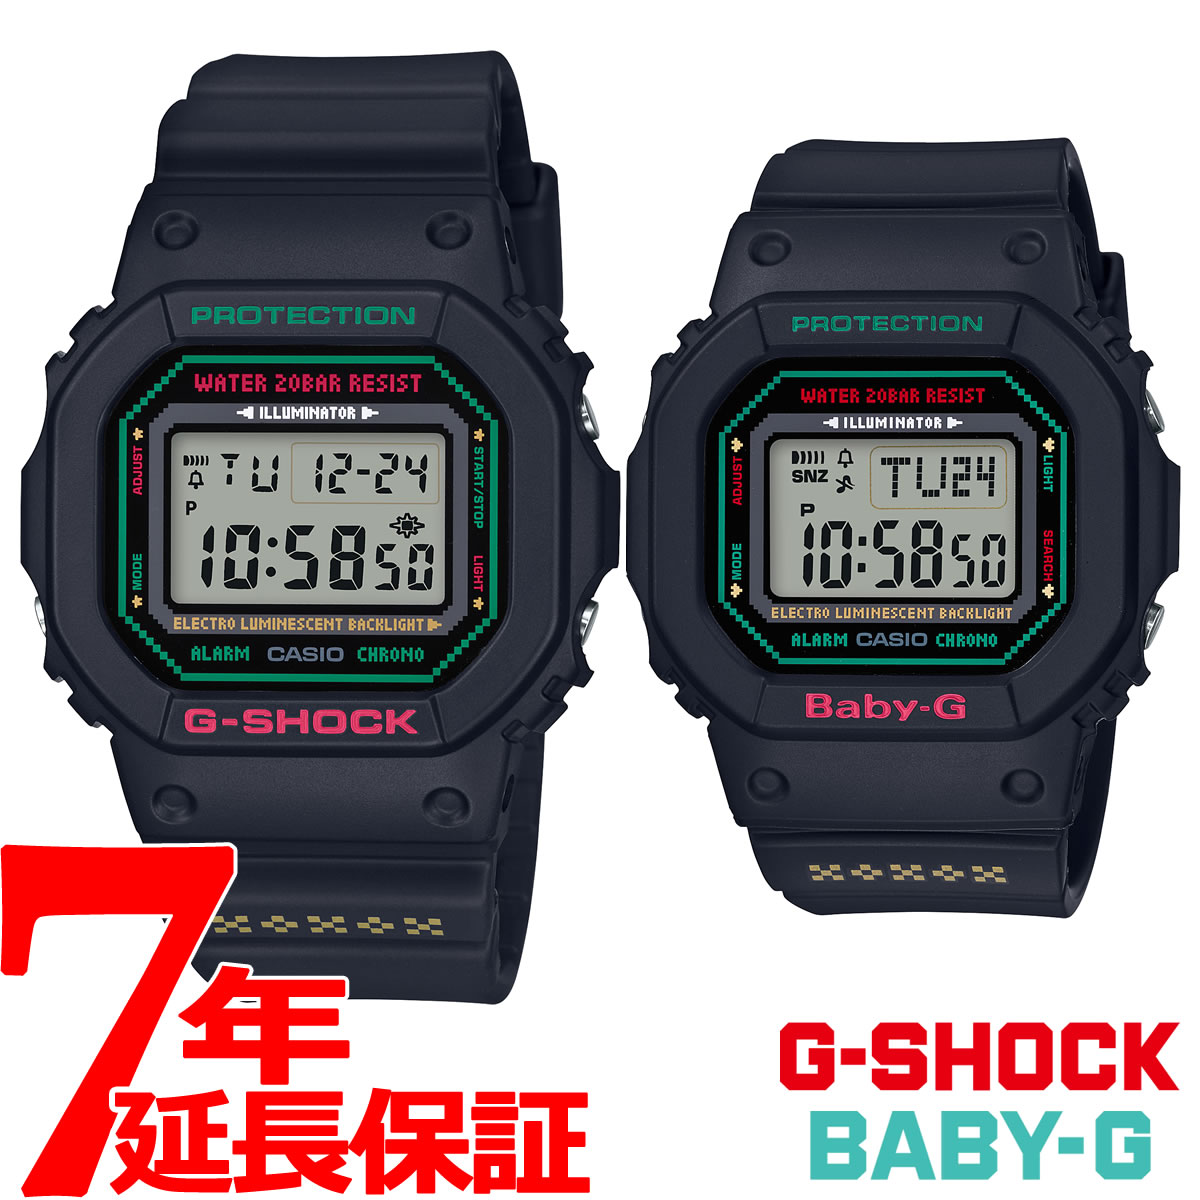 腕時計, メンズ腕時計 20060202359 CASIO 2019 G G-SHOCK G BABY-G LOV-19B-1JR